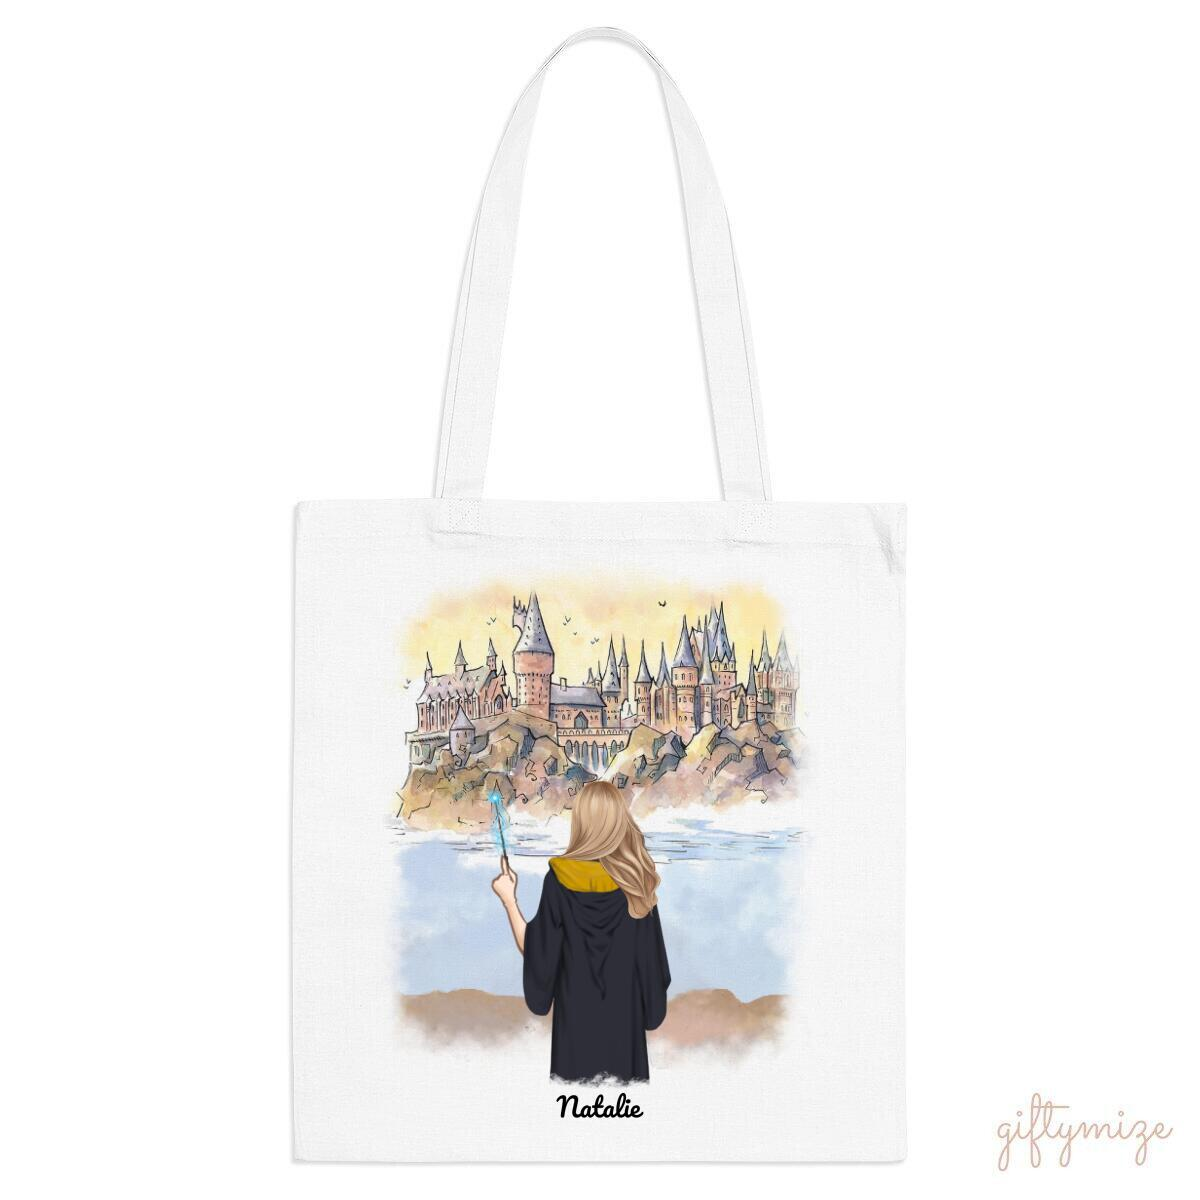 Harry Potter Inspired Girl Personalized Tote Bag - Name, hair, skin, background can be customized